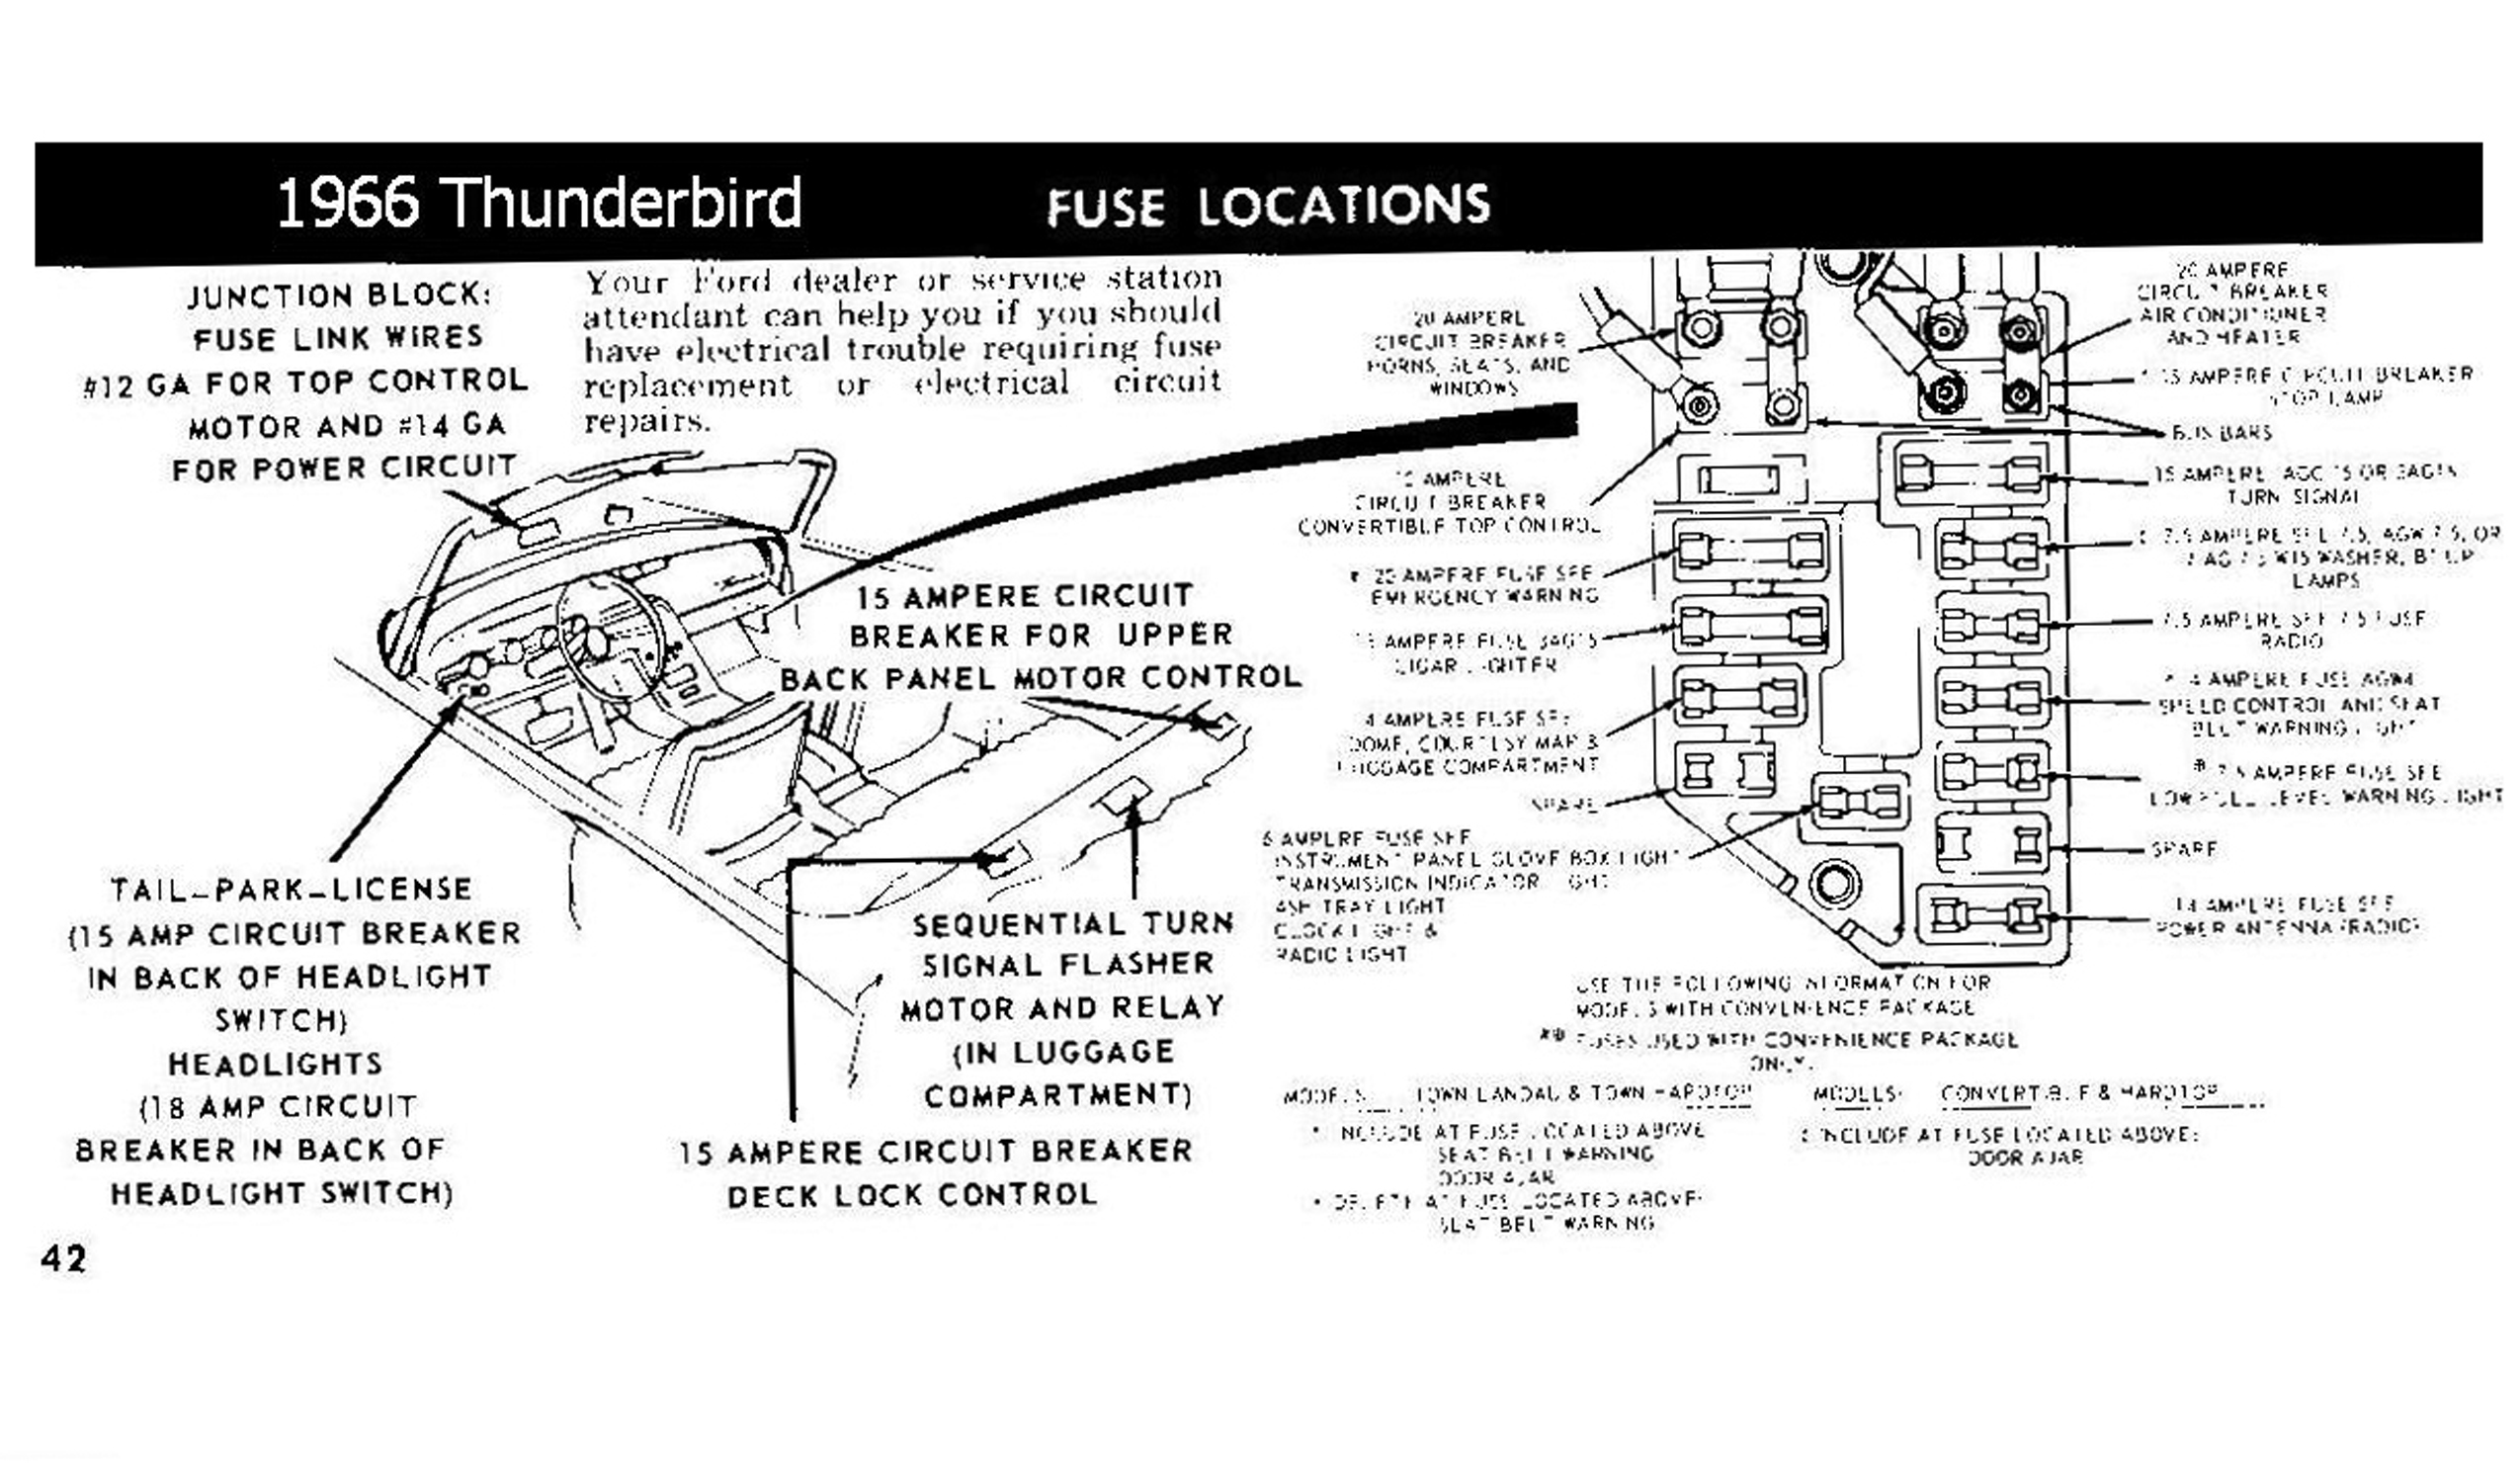 66TbirdFuseLocations 1958 68 ford electrical schematics 1955 thunderbird fuse box location at suagrazia.org